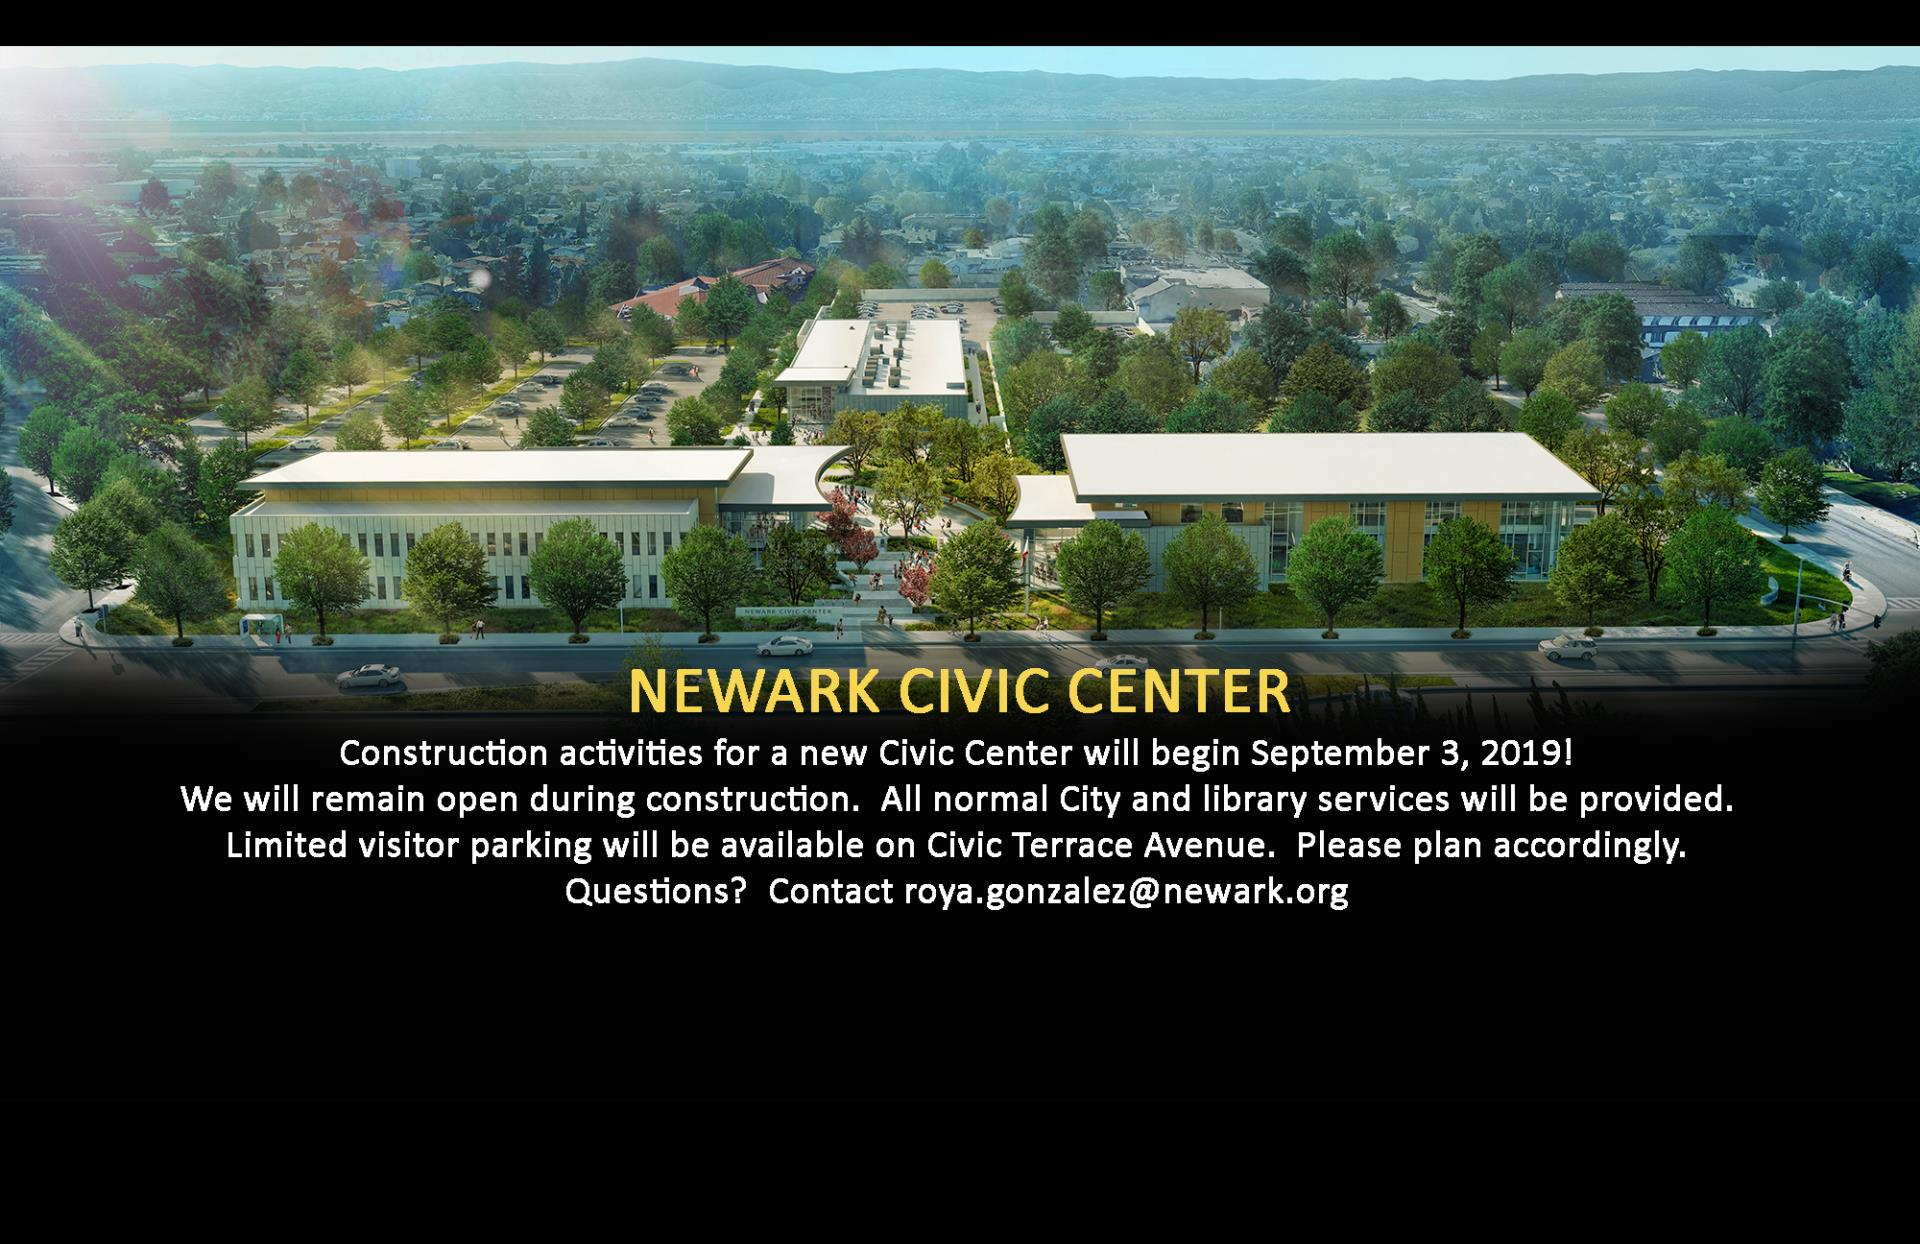 Civic Center Rendering5